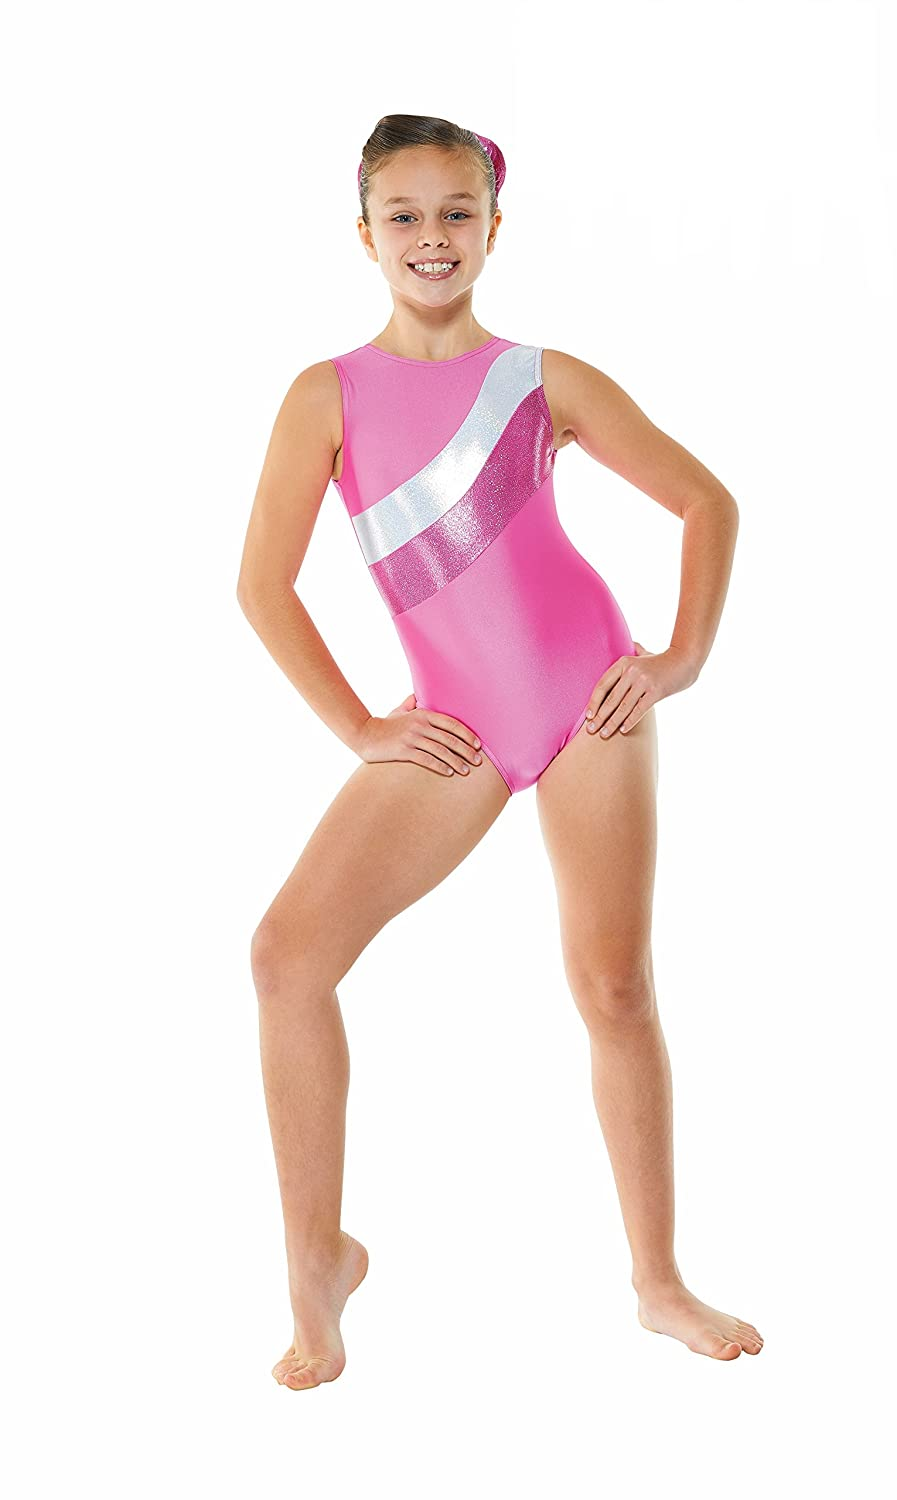 0ff19c5938bc DANCE & LEISUREWEAR Tappers & Pointers GYM/18 Sleeveless Gymnastics Leotard  - Purple Or Pink Available: Amazon.co.uk: Sports & Outdoors